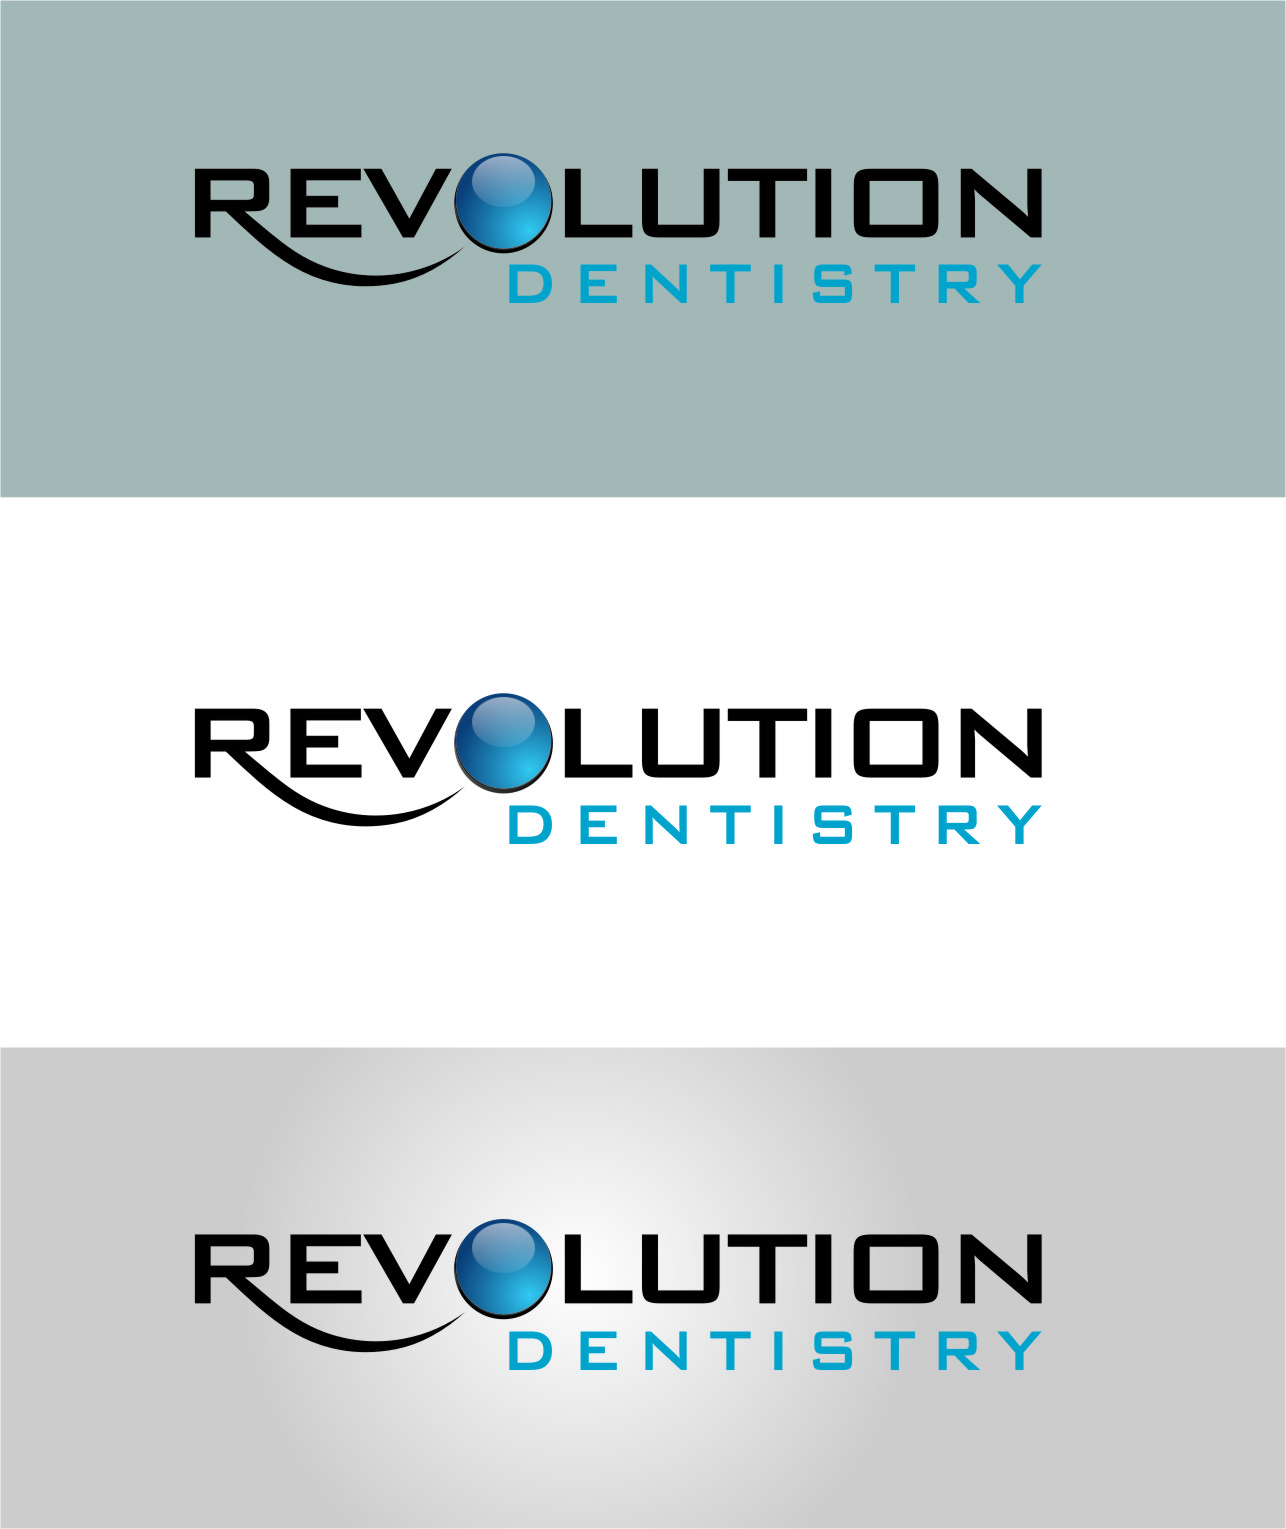 Logo Design by RasYa Muhammad Athaya - Entry No. 261 in the Logo Design Contest Artistic Logo Design for Revolution Dentistry.